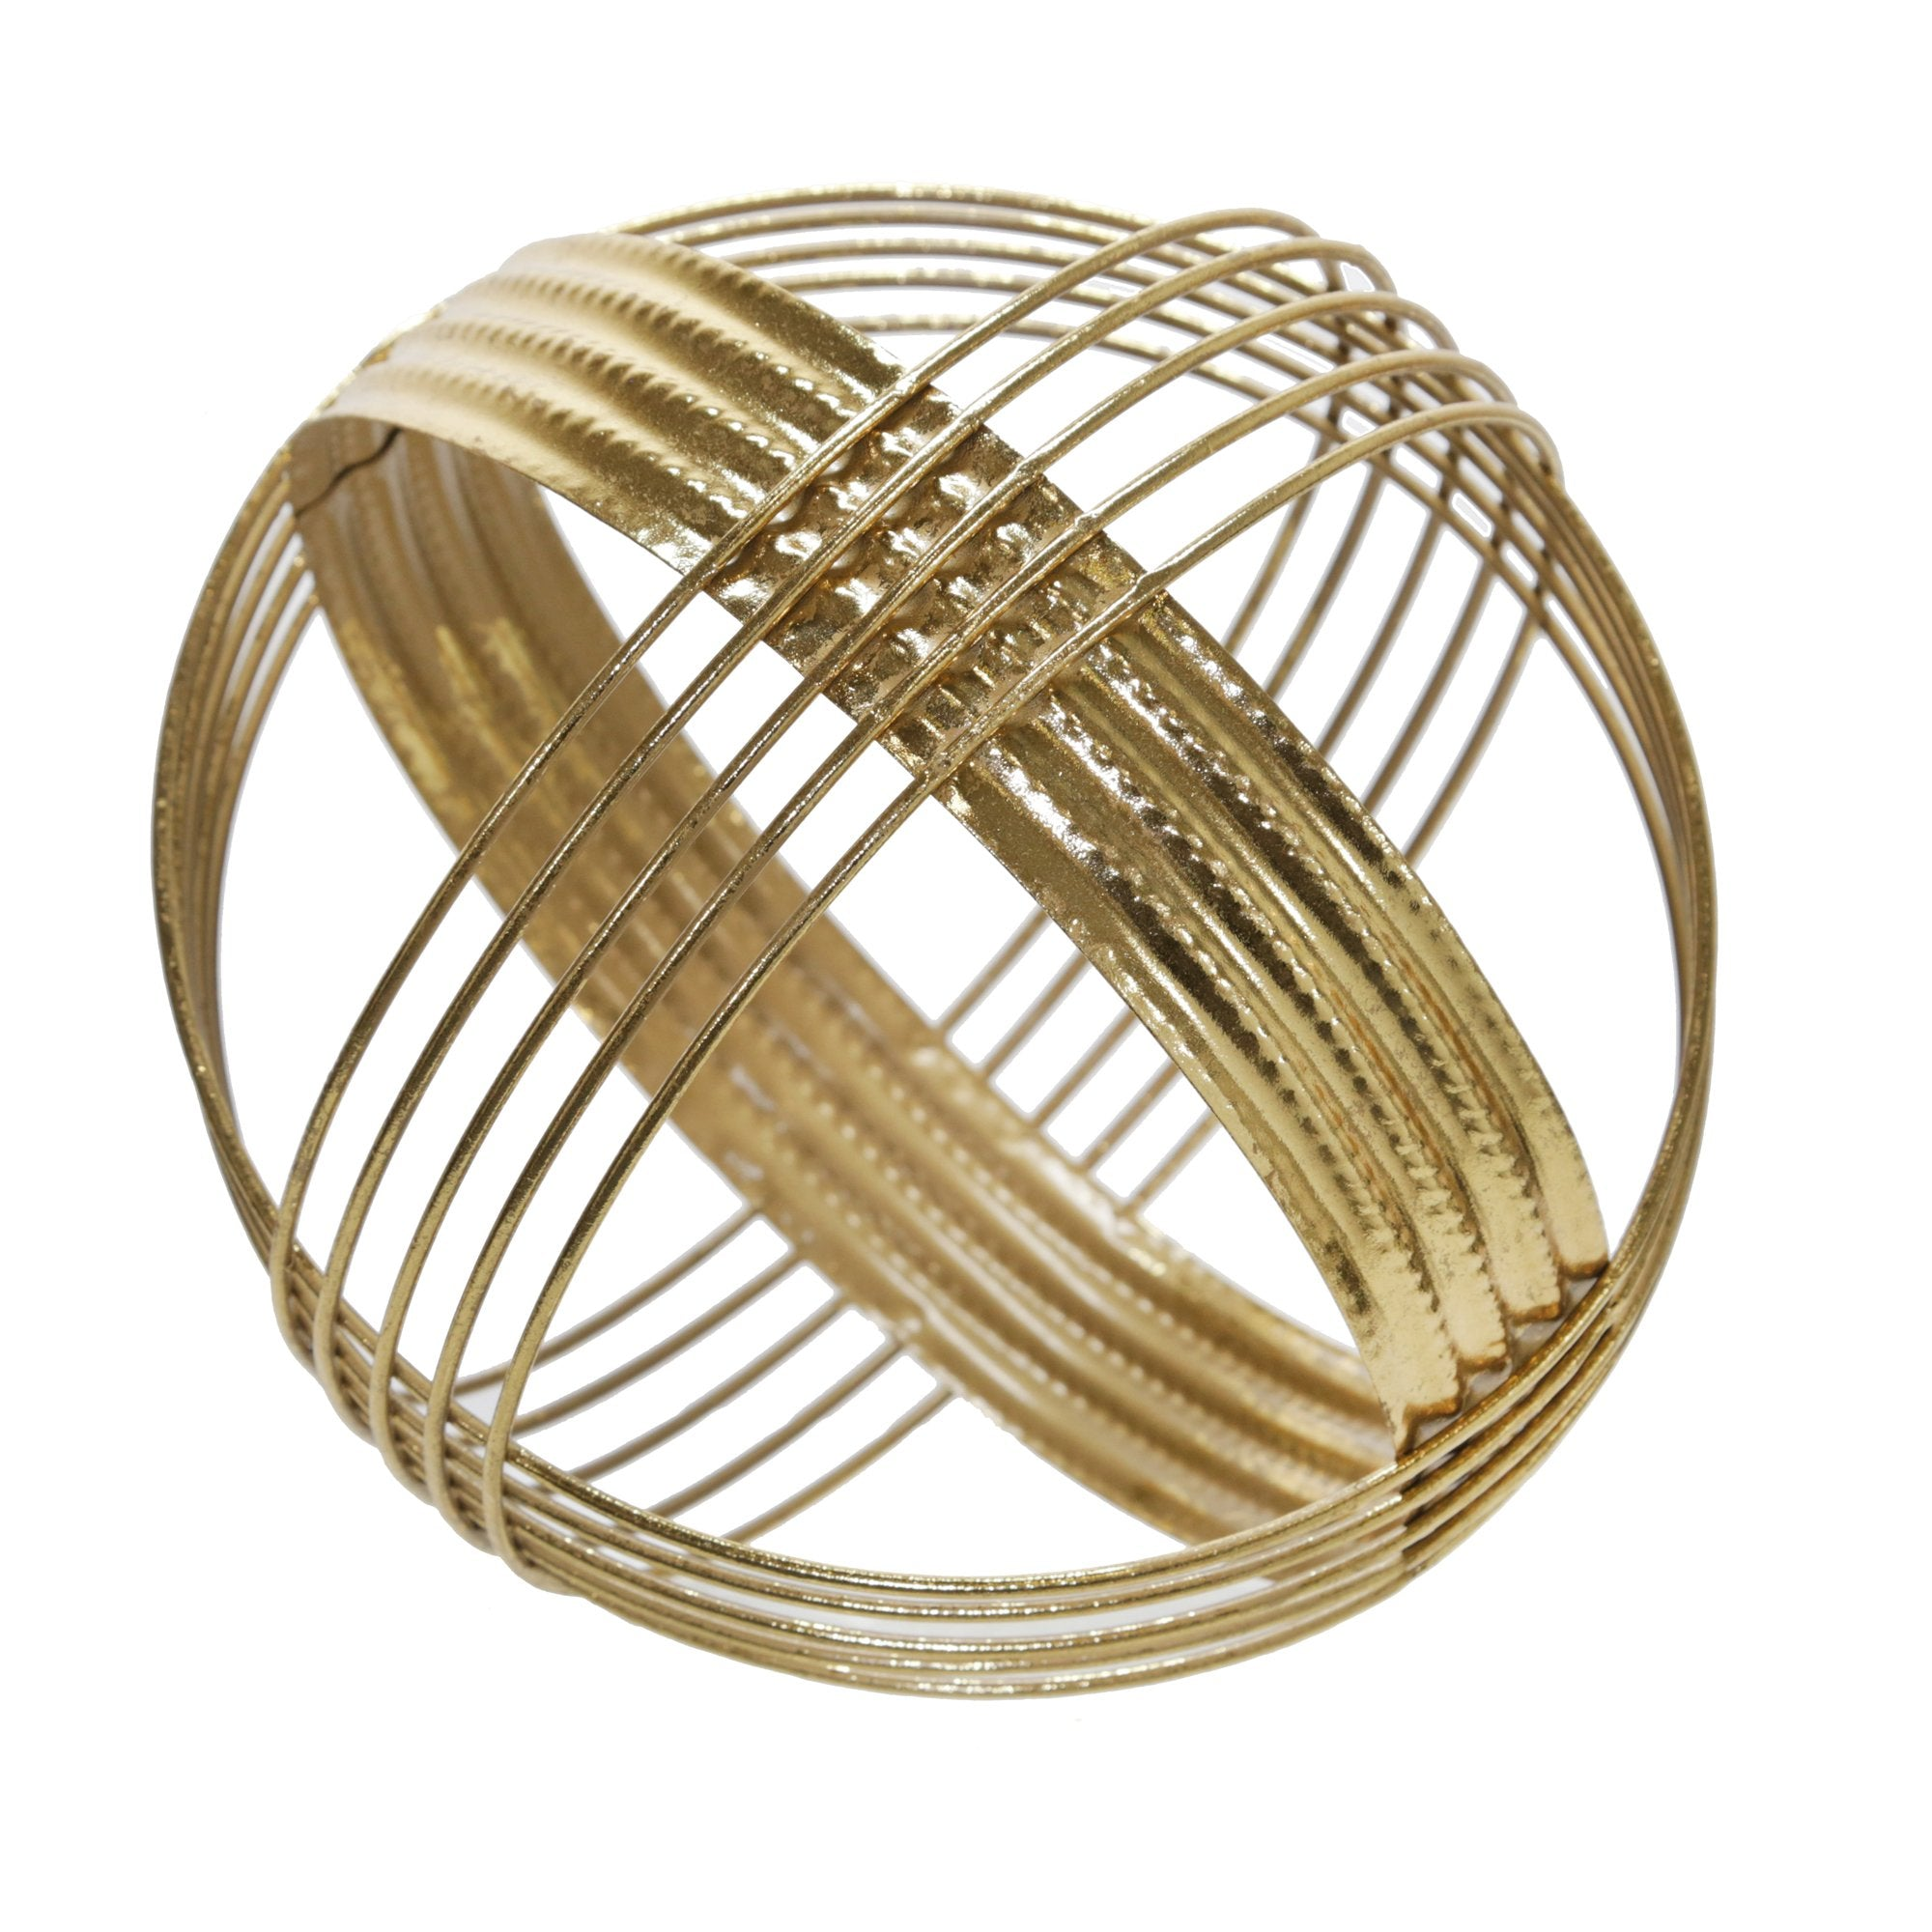 Gold Metal Band Decorative Sphere - DARRA HOME